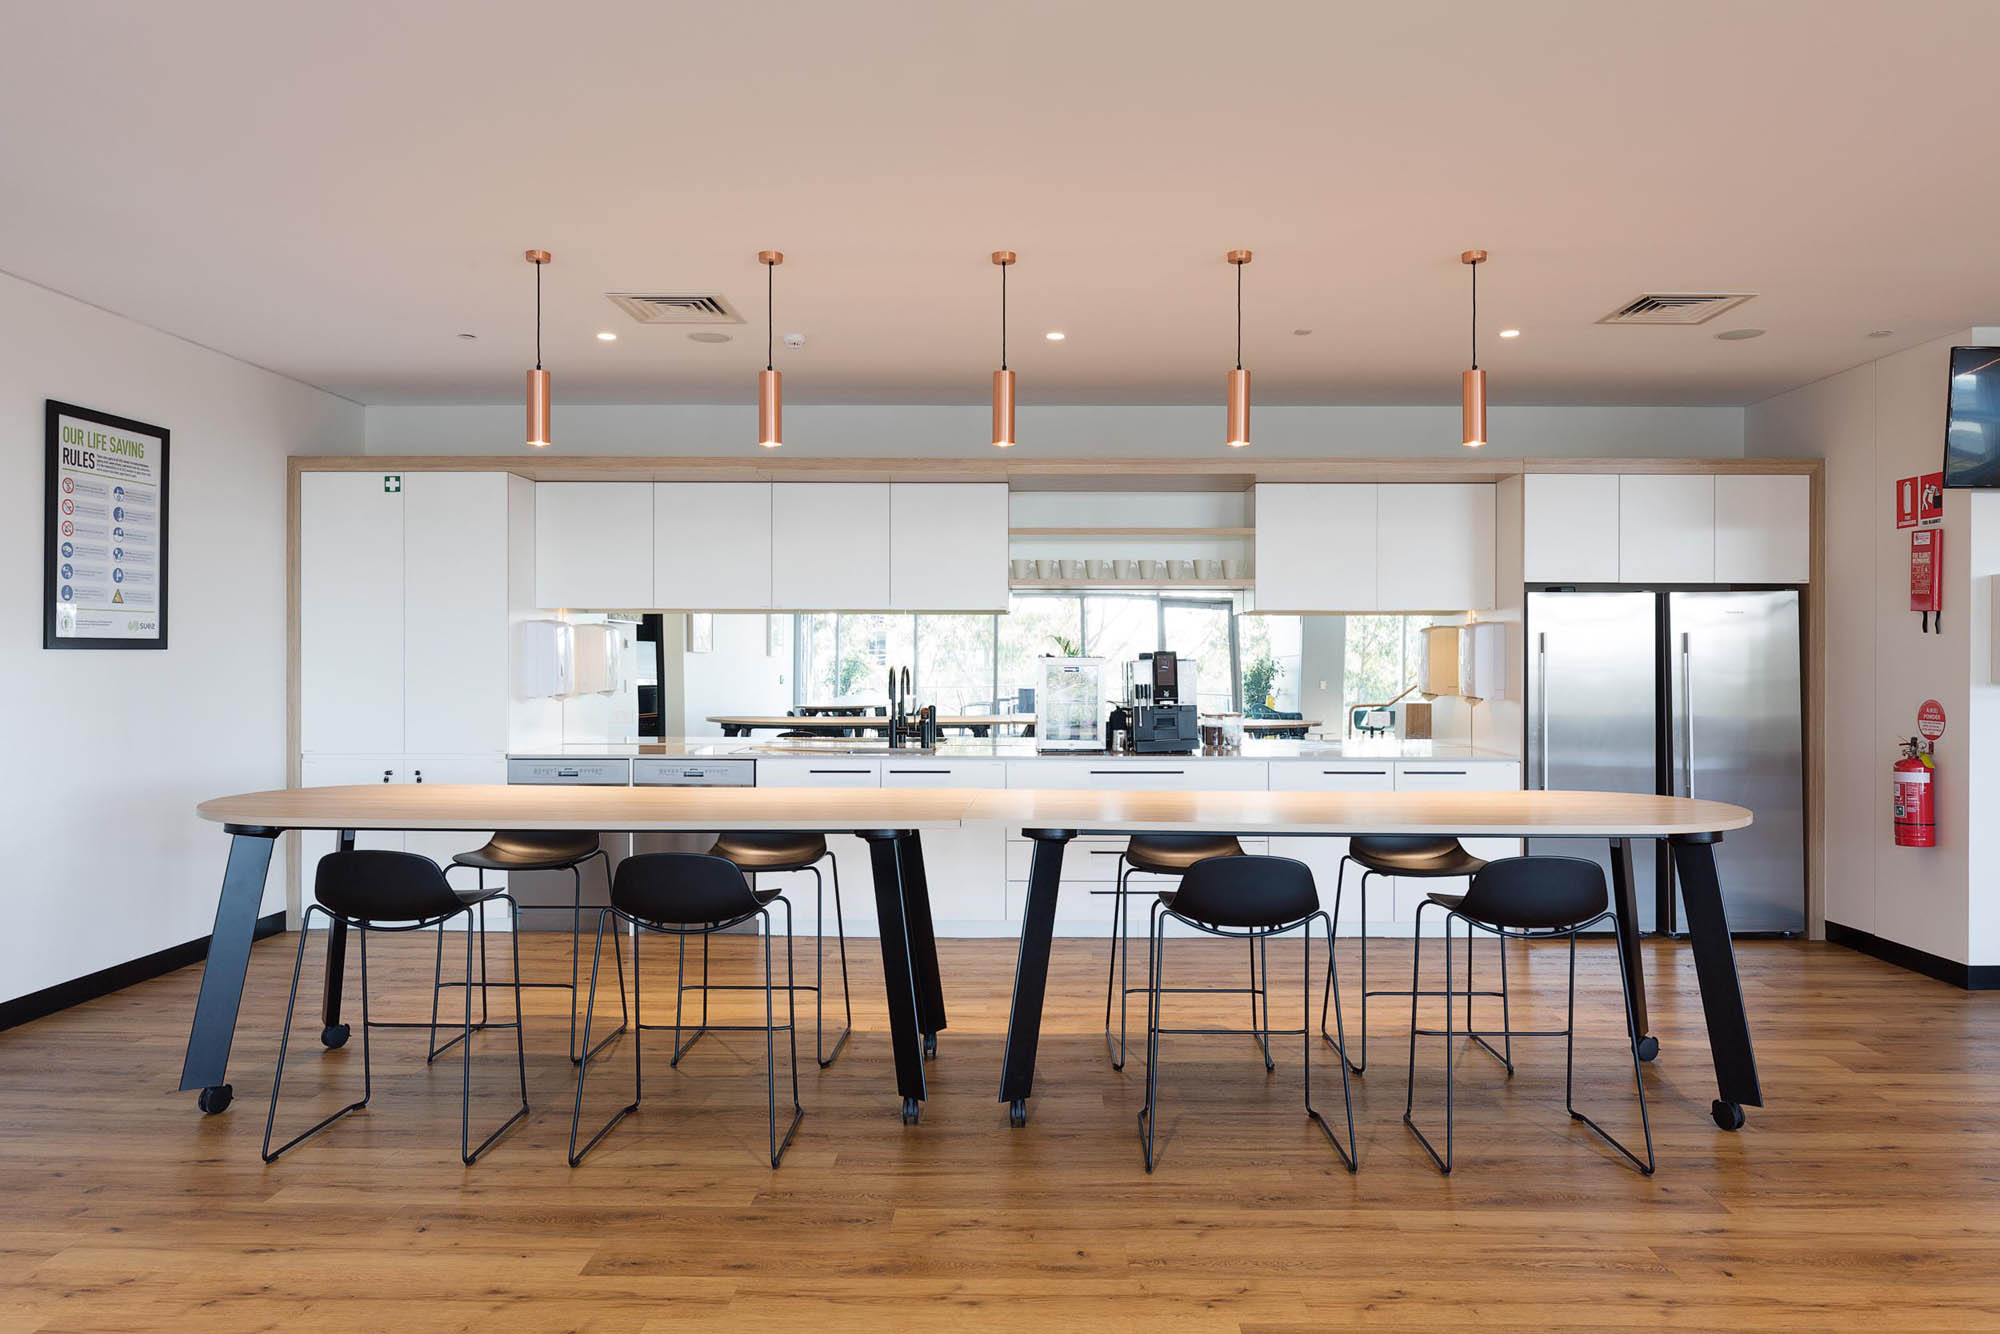 suez-office-kitchen-with-brass-hanging-lights-timber-table-56.jpg